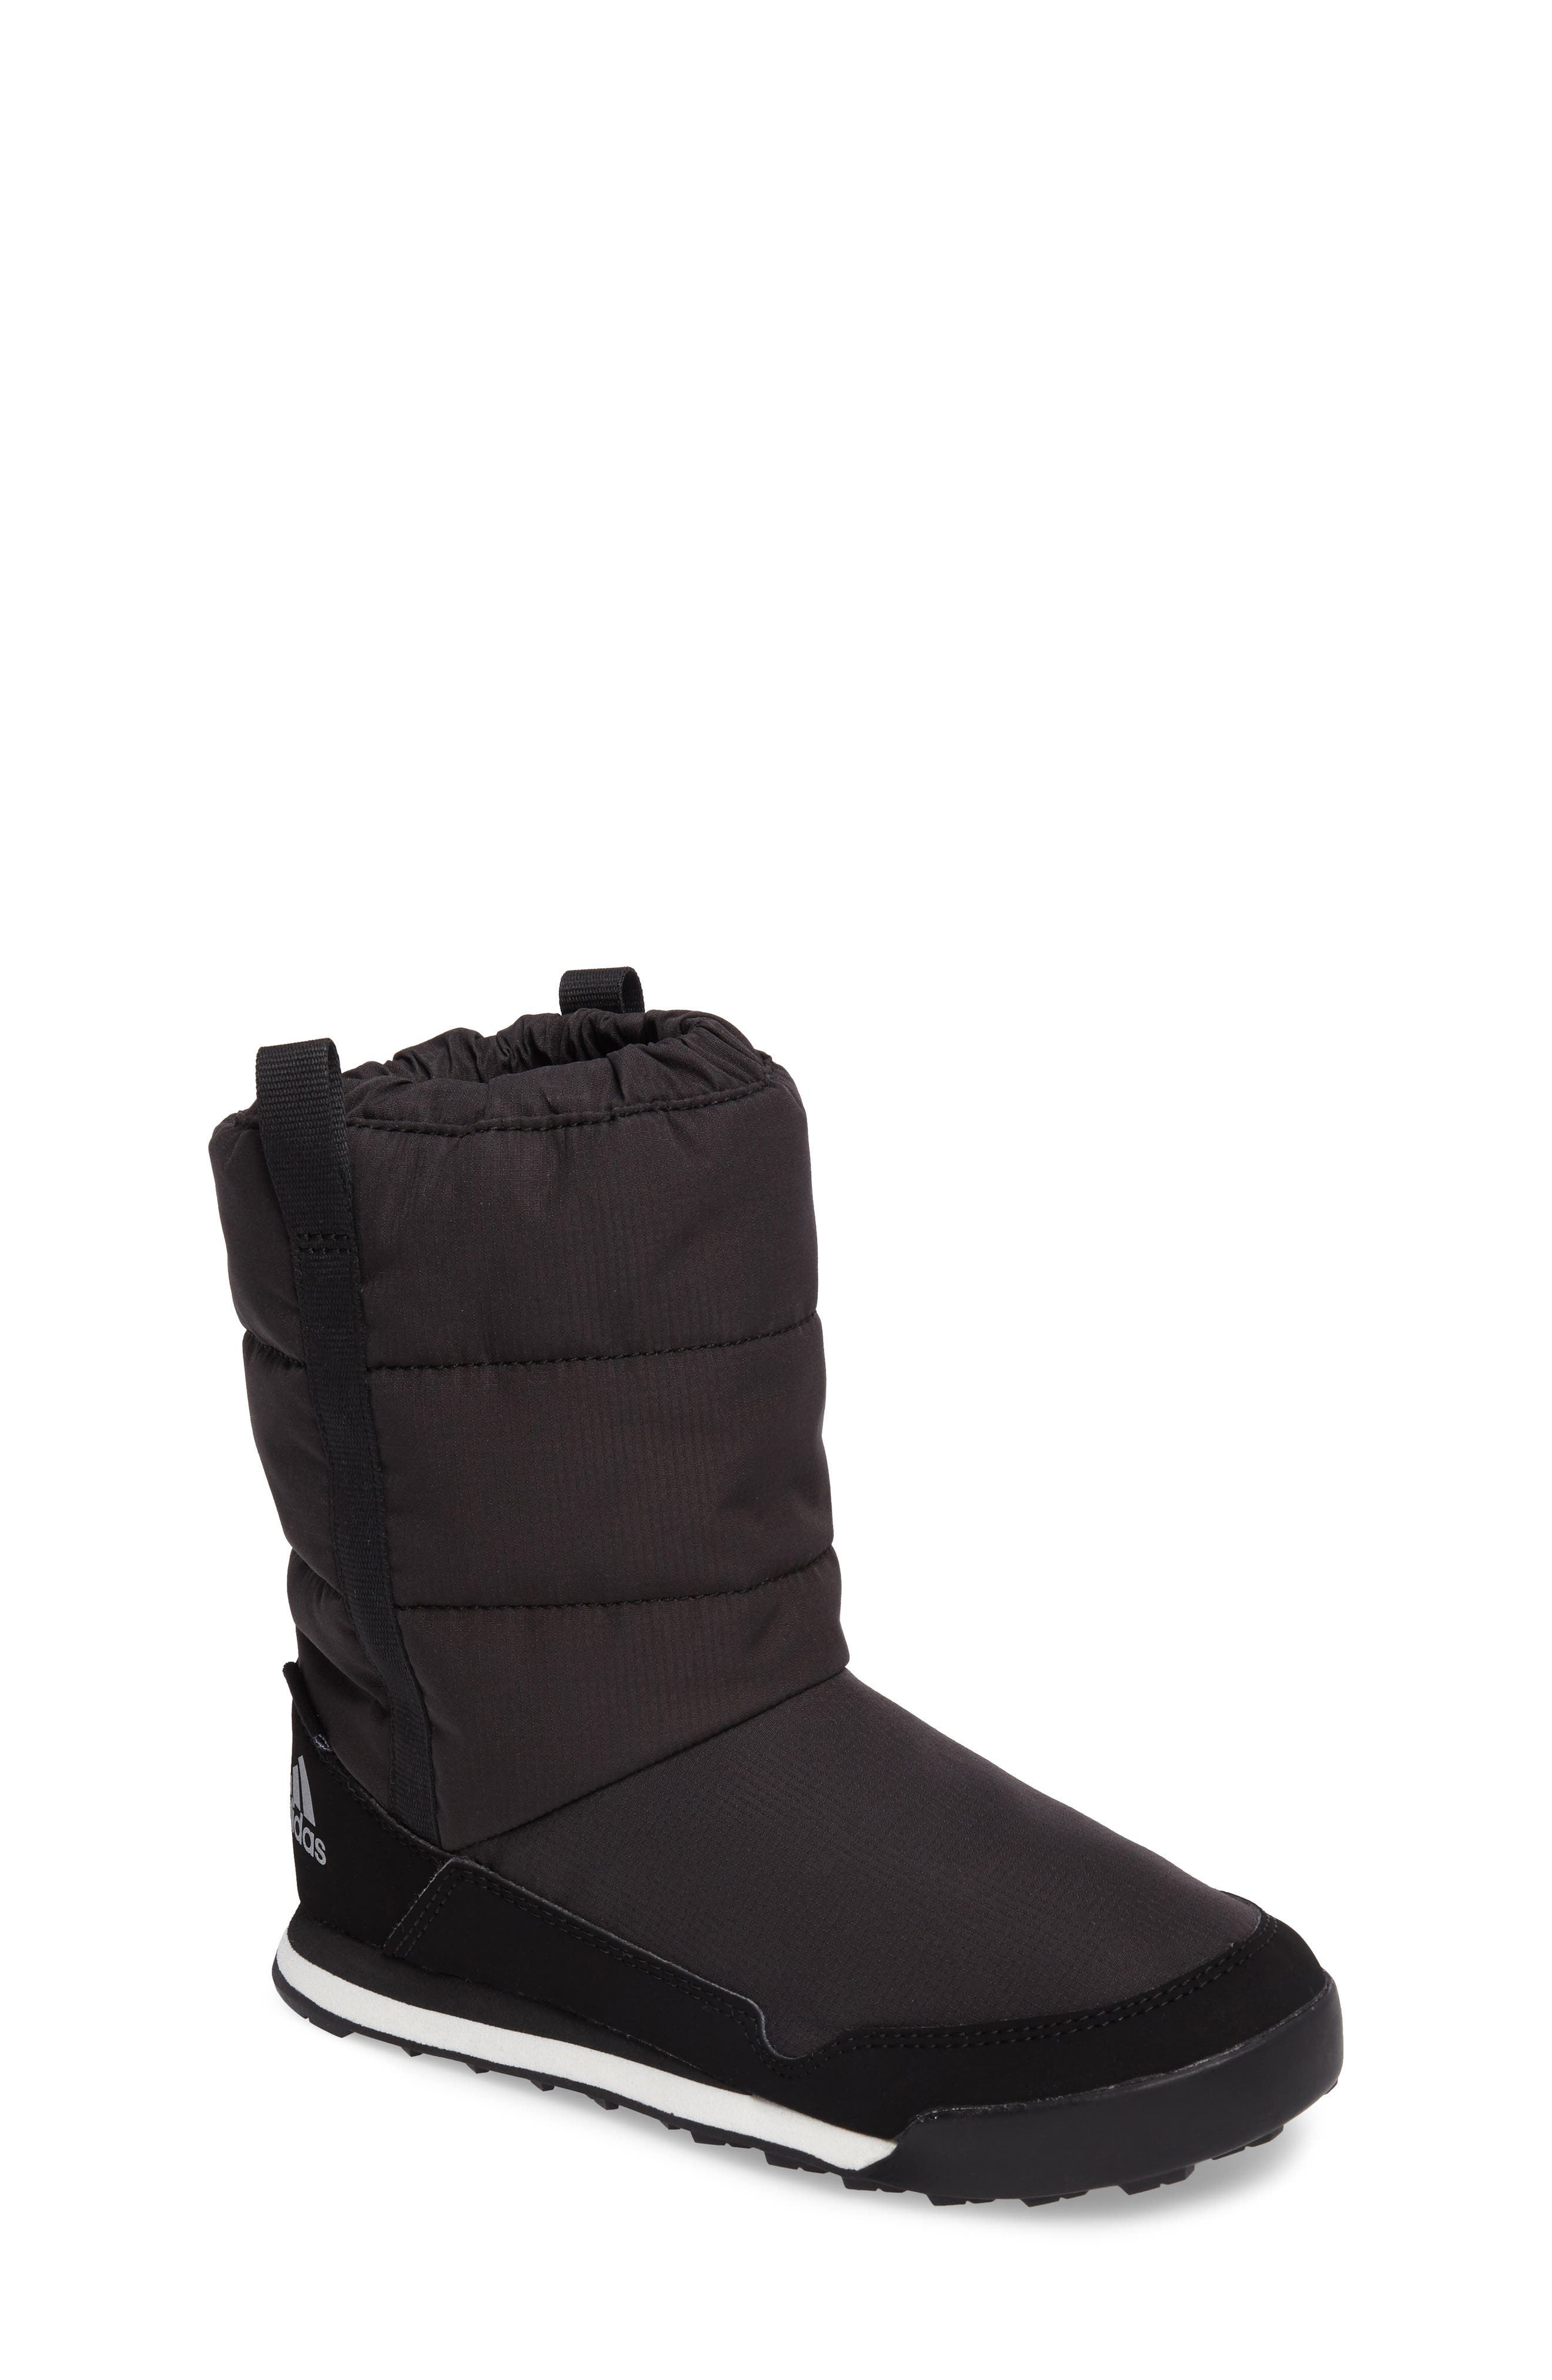 CW Snowpitch Insulated Waterproof Boot,                         Main,                         color, 001